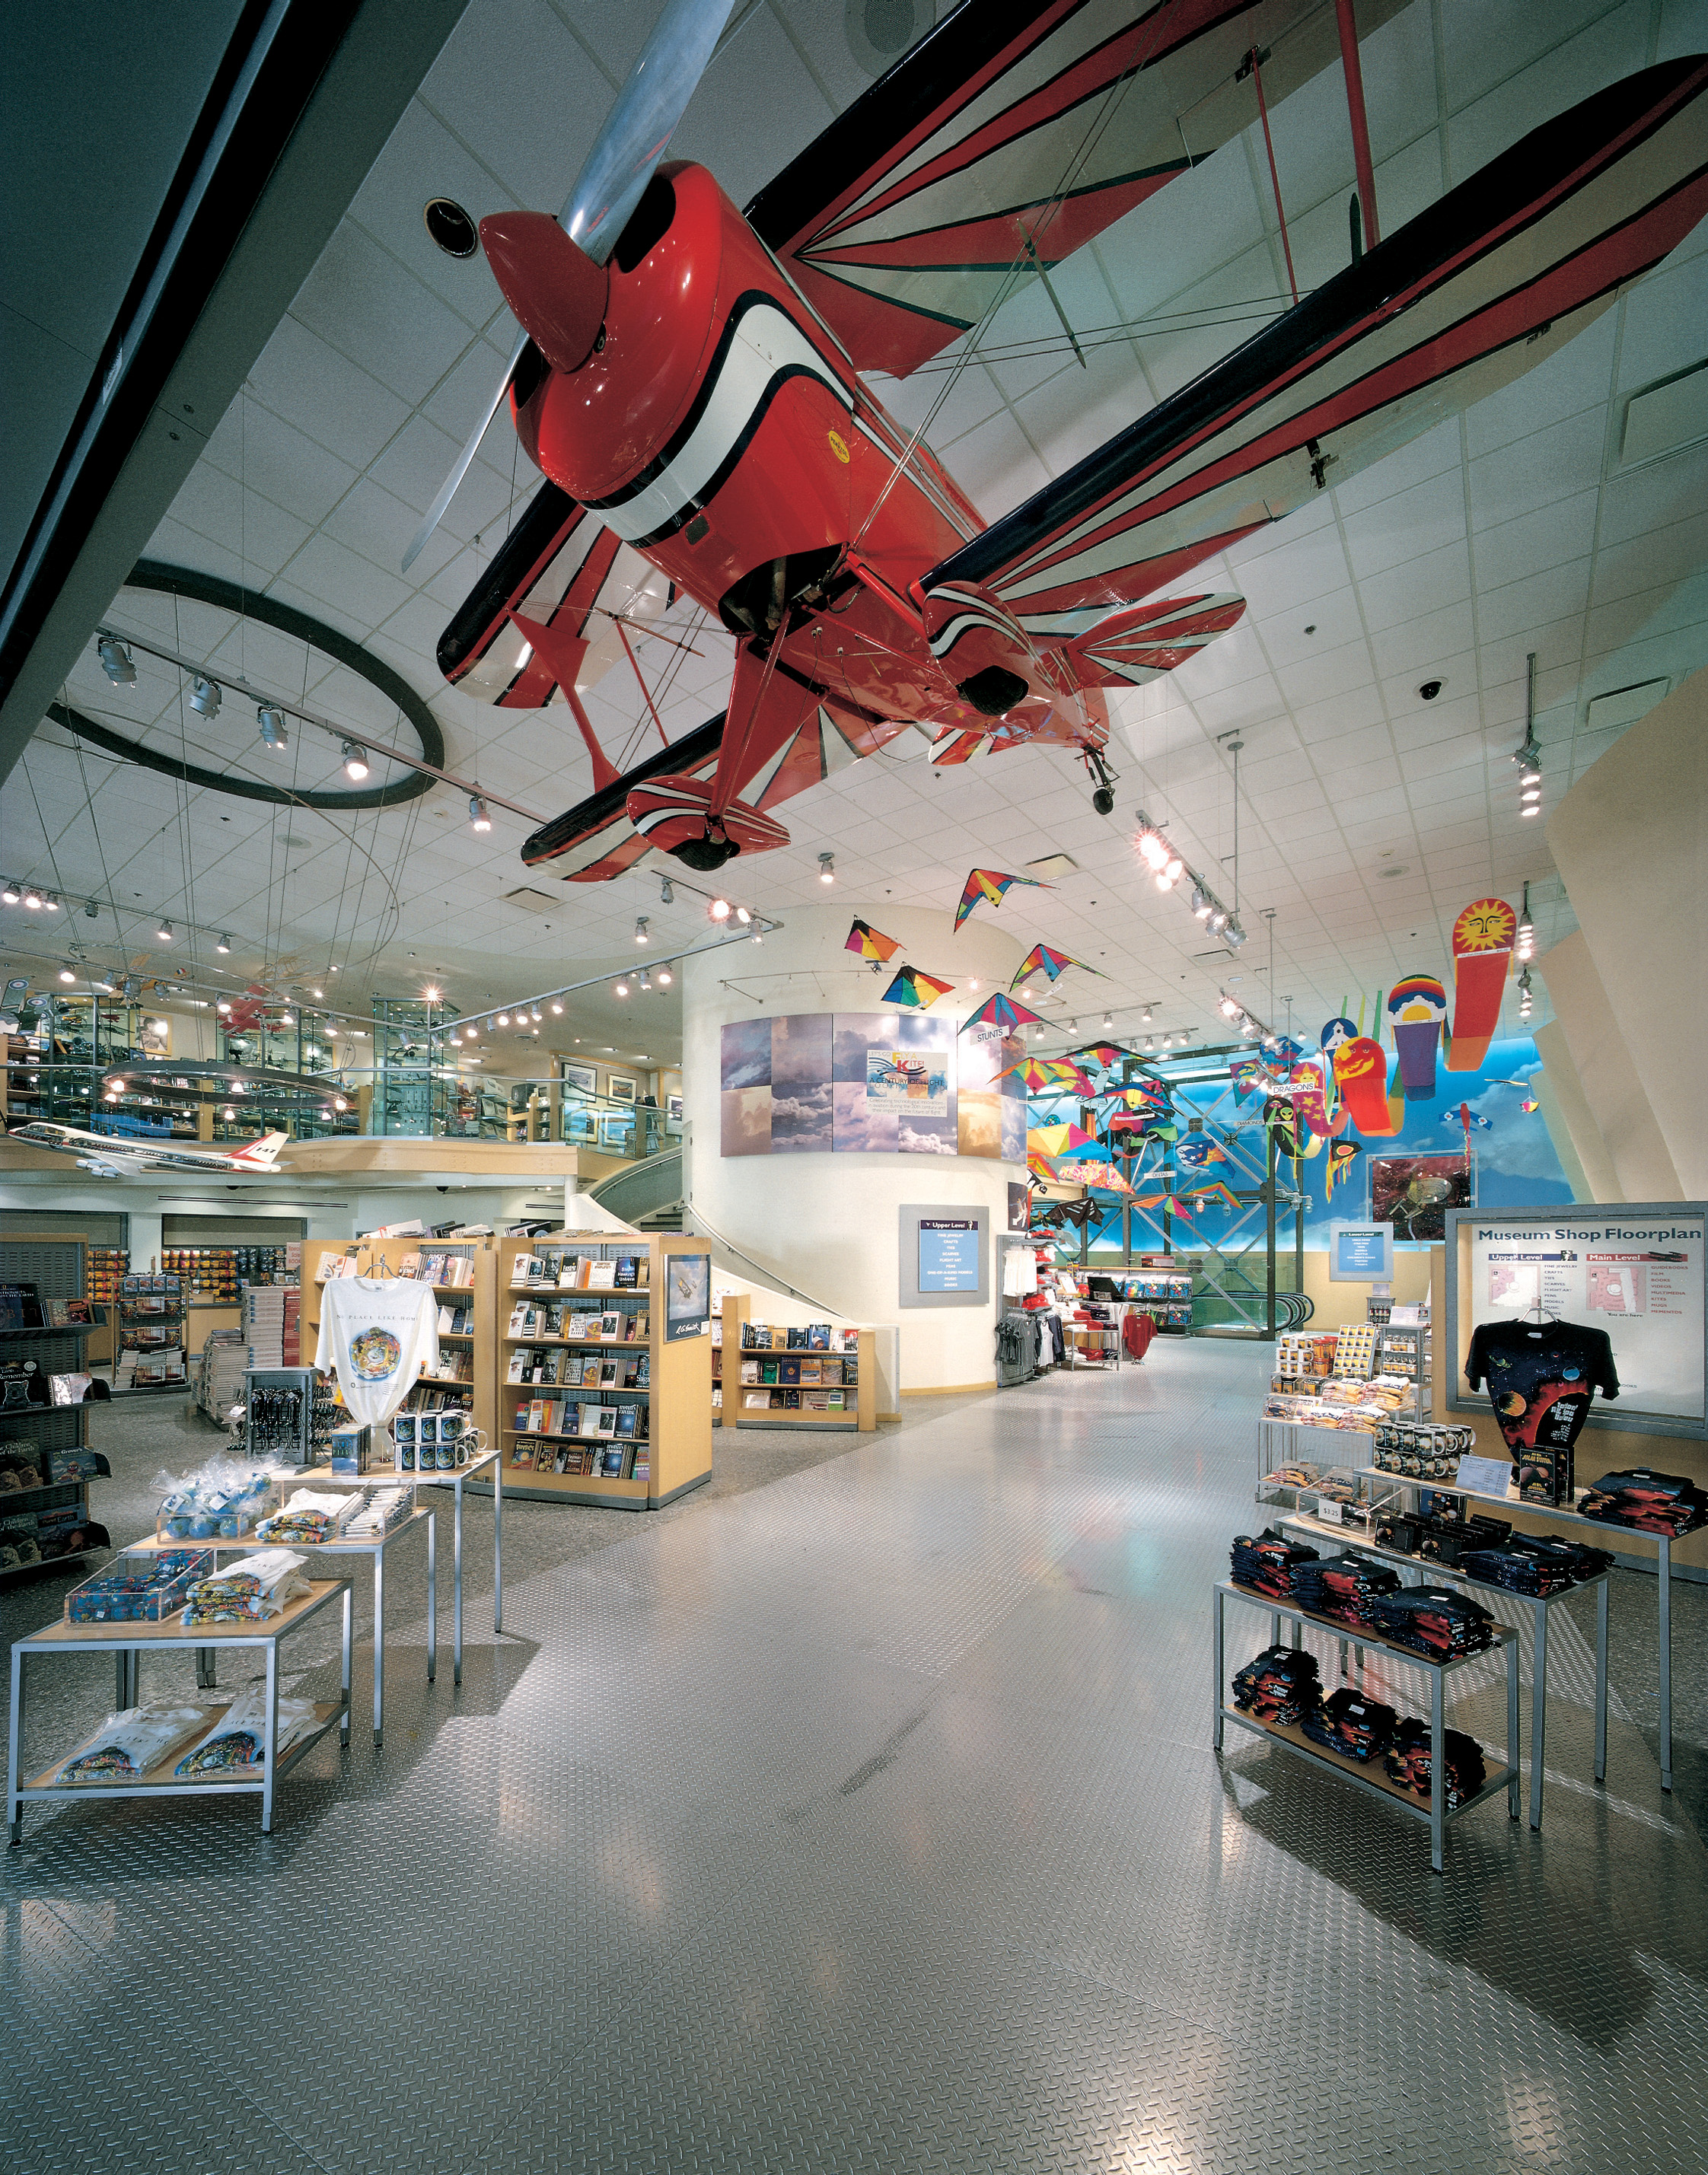 Pitts Special aerobatic airplane in Museum Store